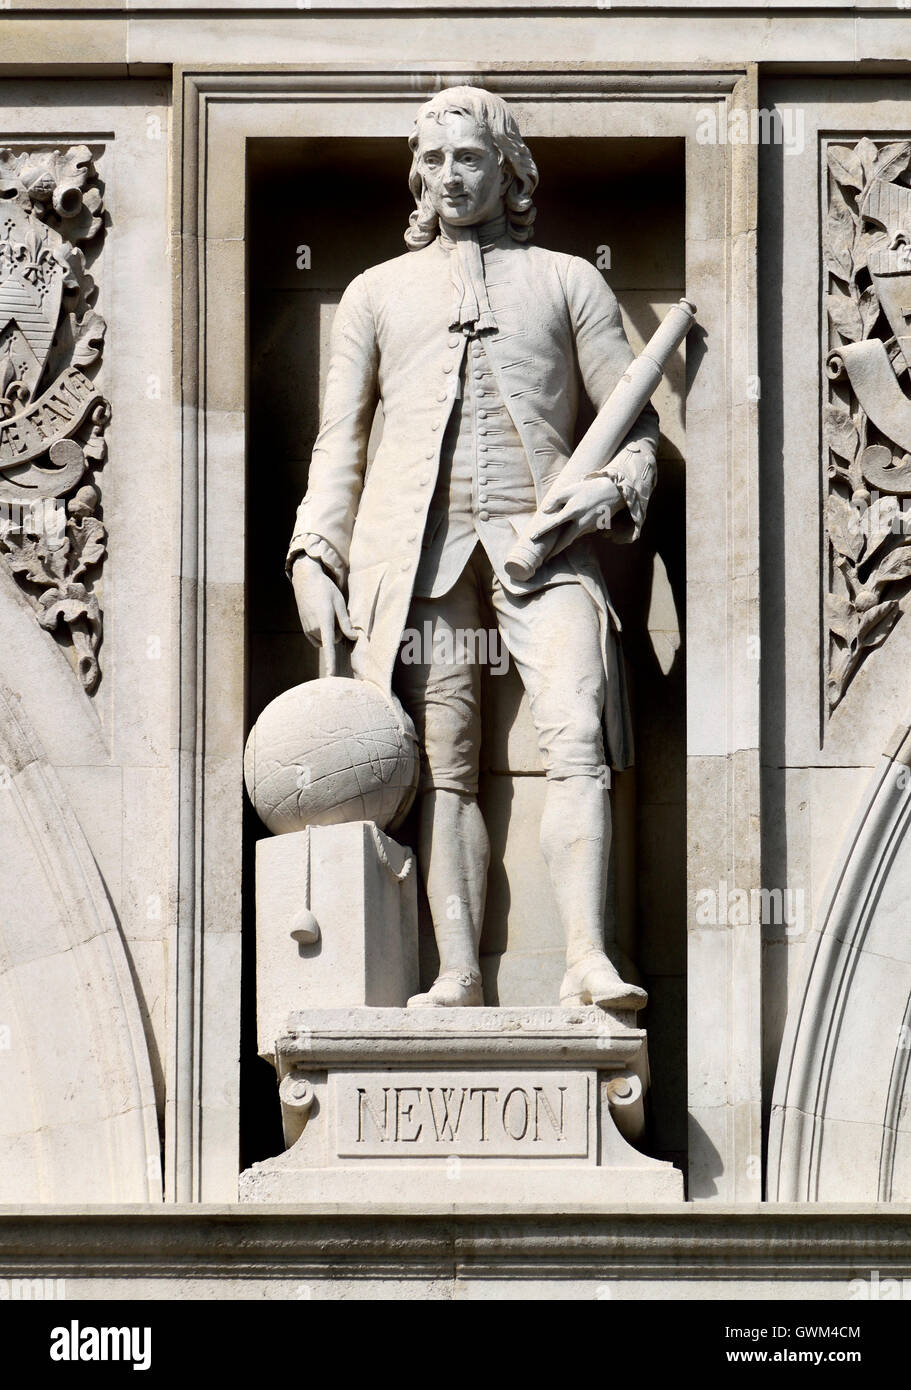 London, England, UK. City of London School, Victoria Embankment. Statue on facade: Isaac Newton - Stock Image